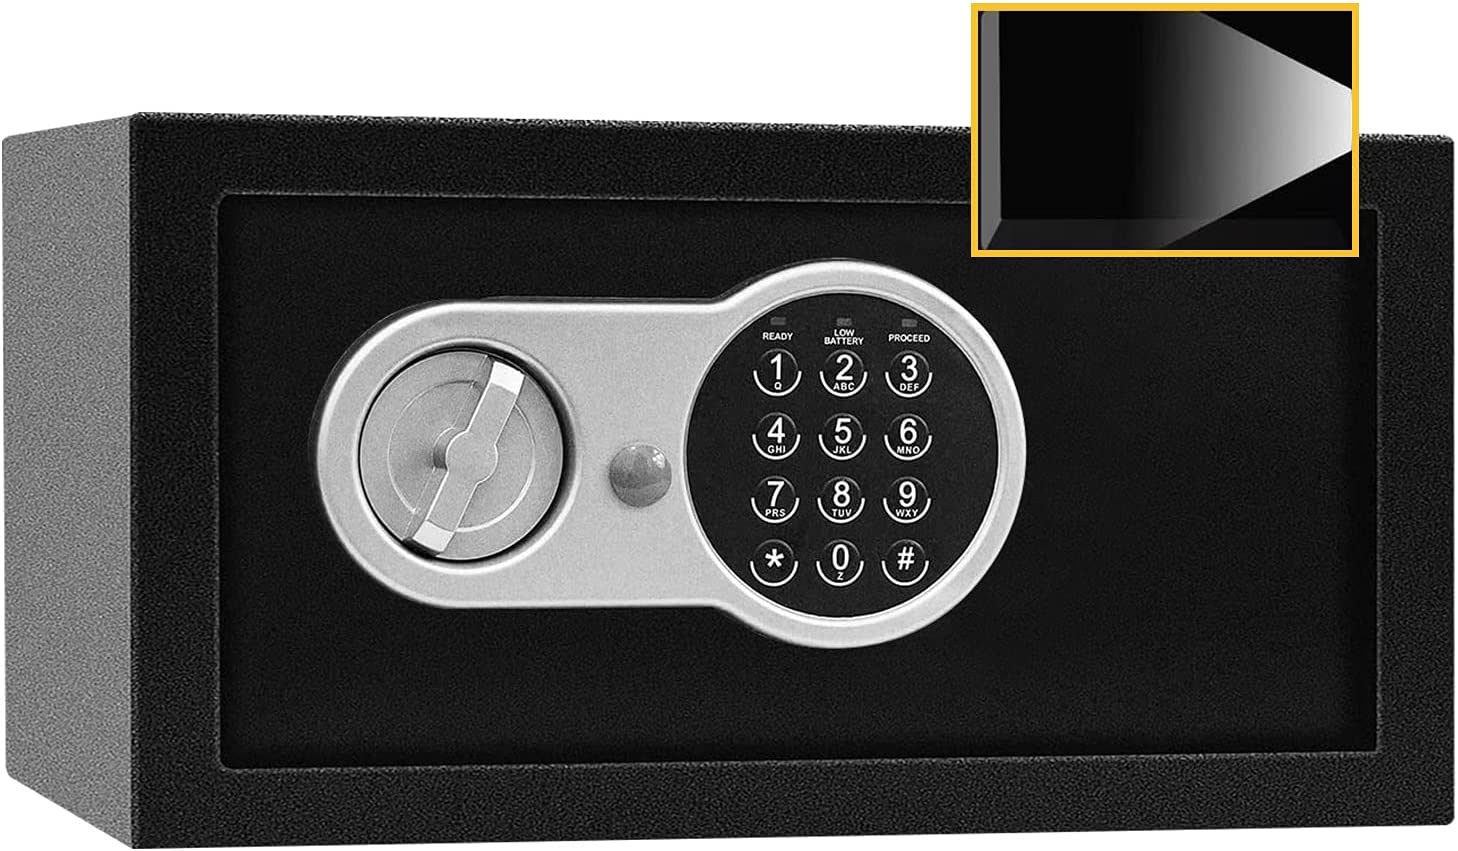 Sdstone Safe Box with Sensor Light, Fire Retardant Safe with Lock,Electronic Safe with Digital Keypad for Home,Wall or Cabinet Anchoring Design. Protect Cash, Jewelry, 0.8 Cubic Feet